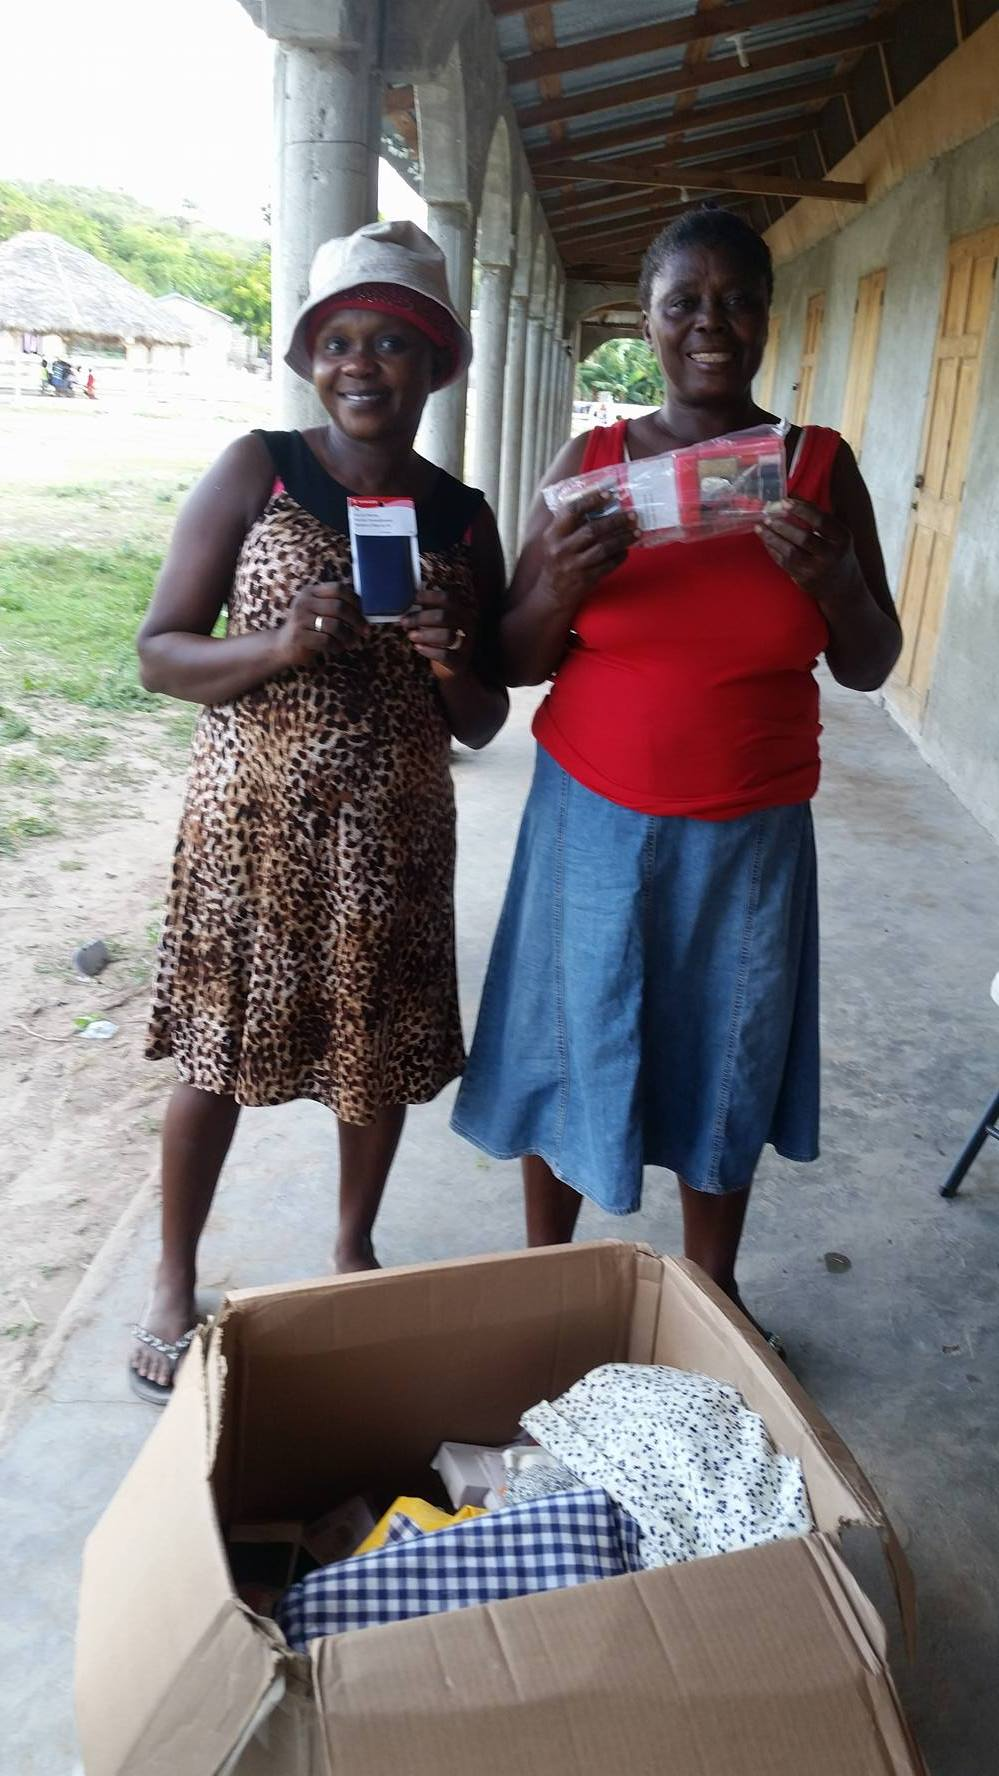 Terzilia and Jules, students in the Mole St. Nicolas sewing class, opening a box of donated sewing supplies.